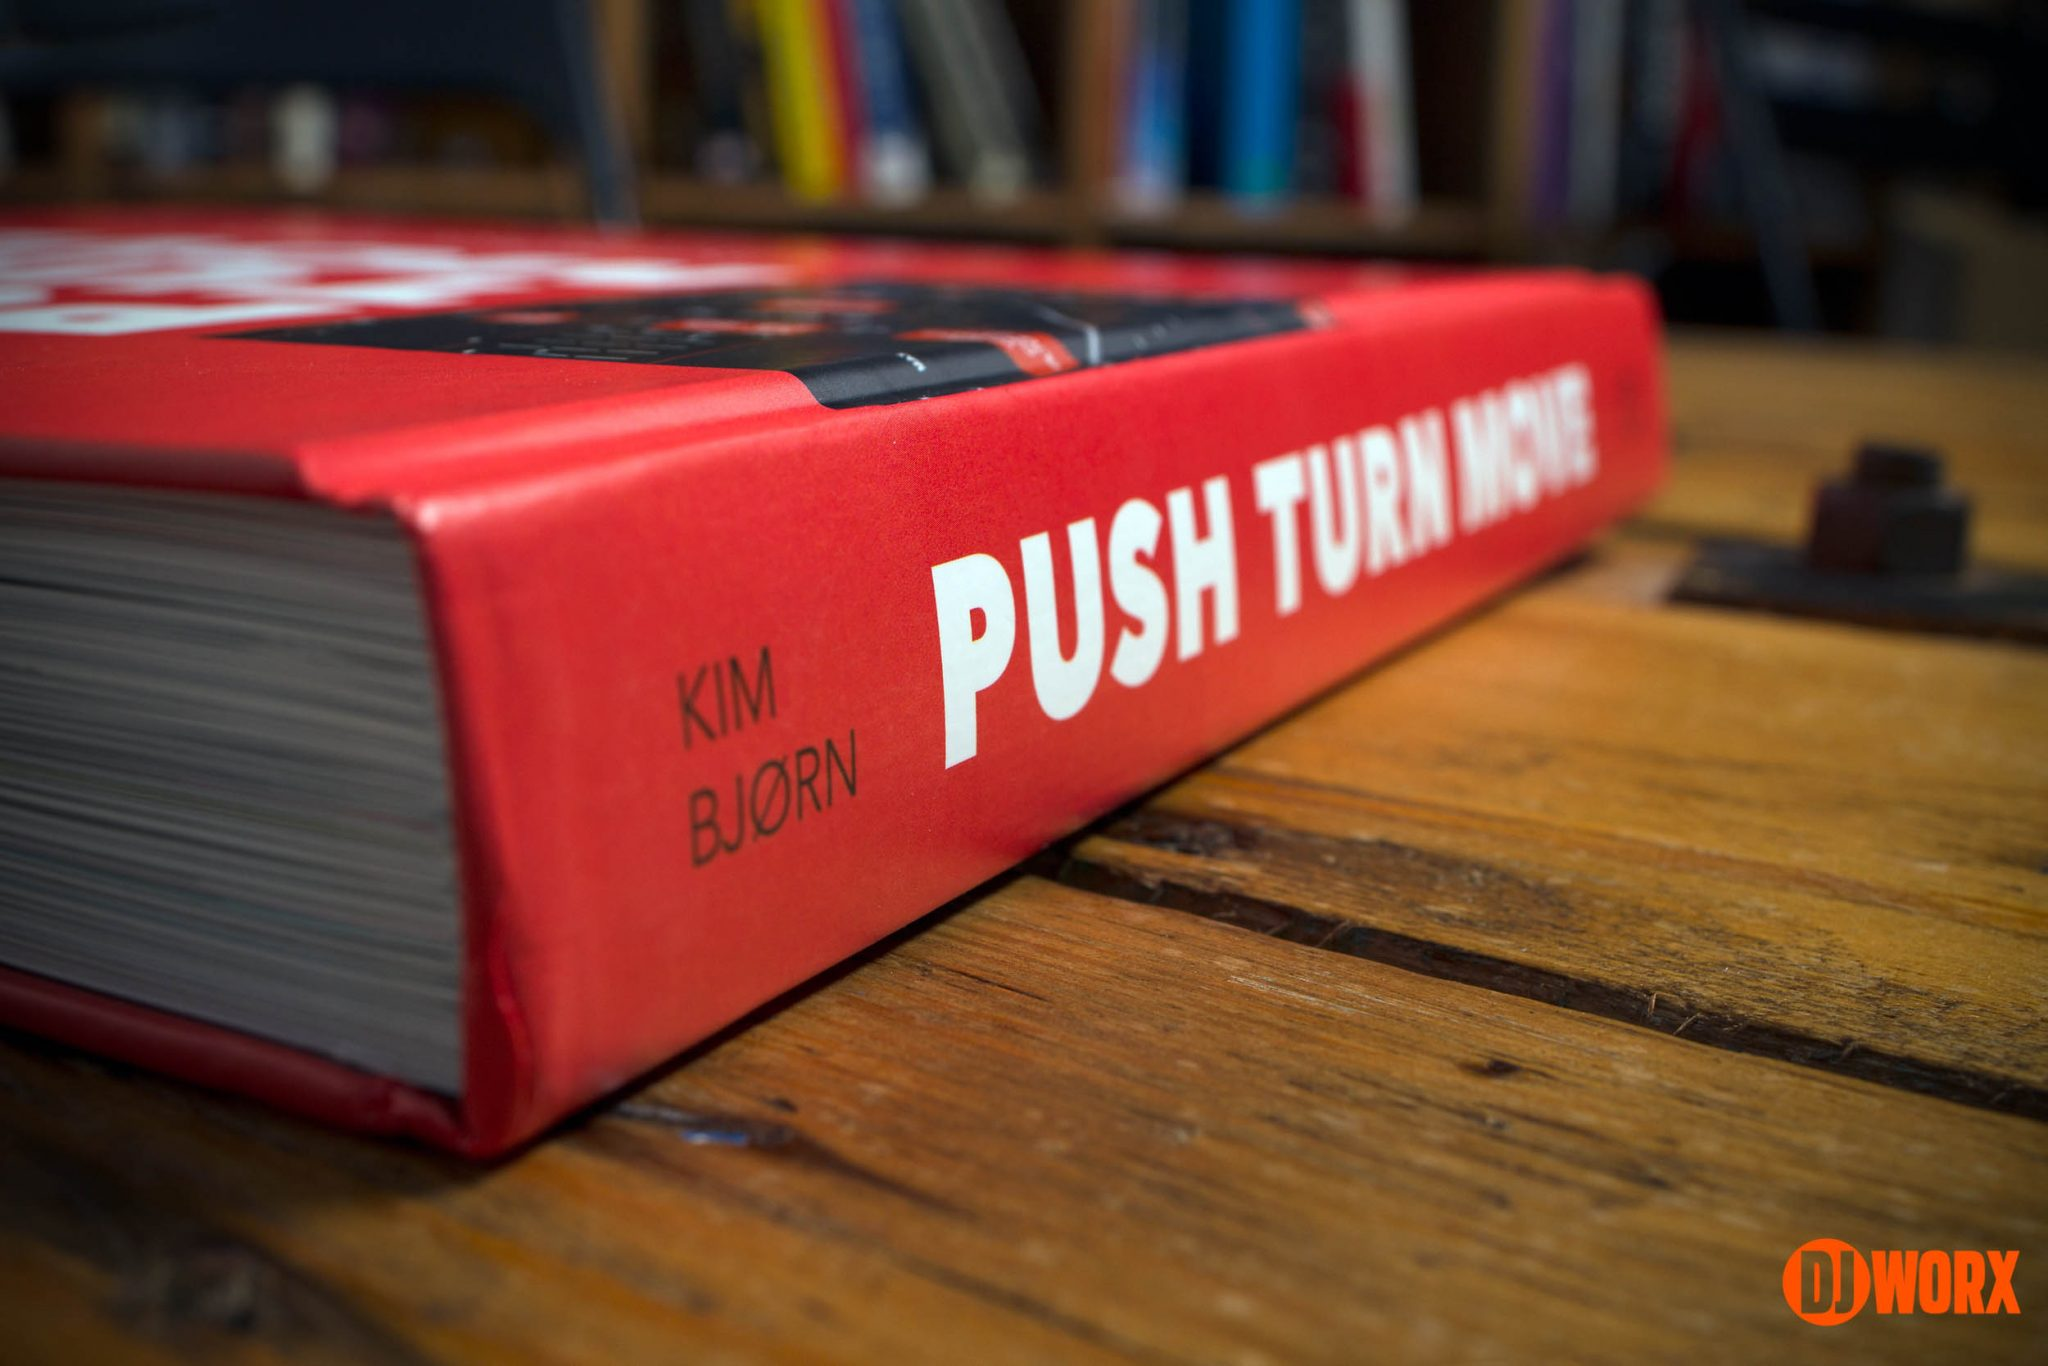 Push Turn Move Book Kim Bjorn (4)